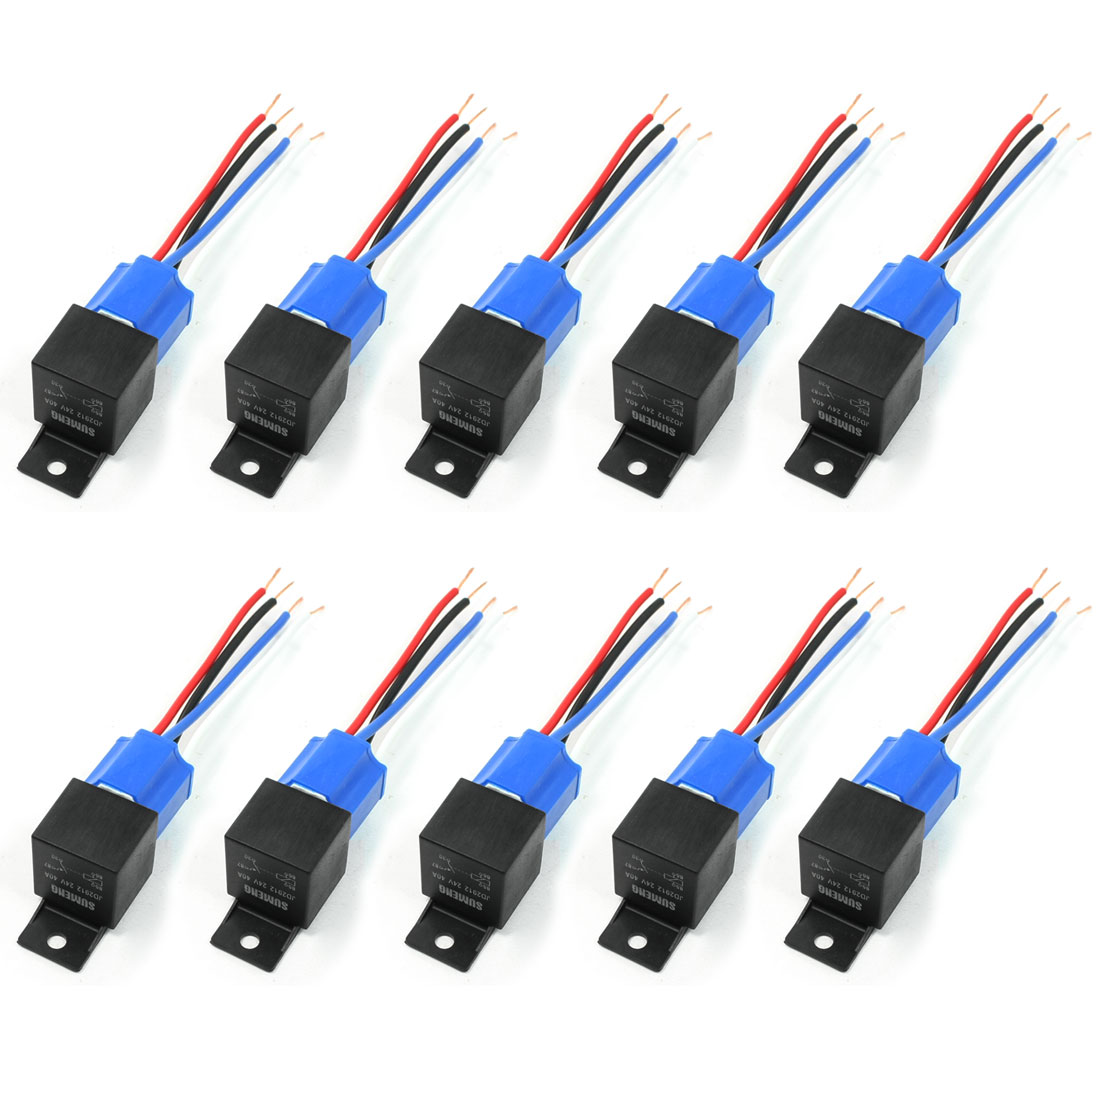 40A 24V DC Harness Wire Ceramic Socket Car Stereo Alarm SPST 1NC Relay 10 Pcs